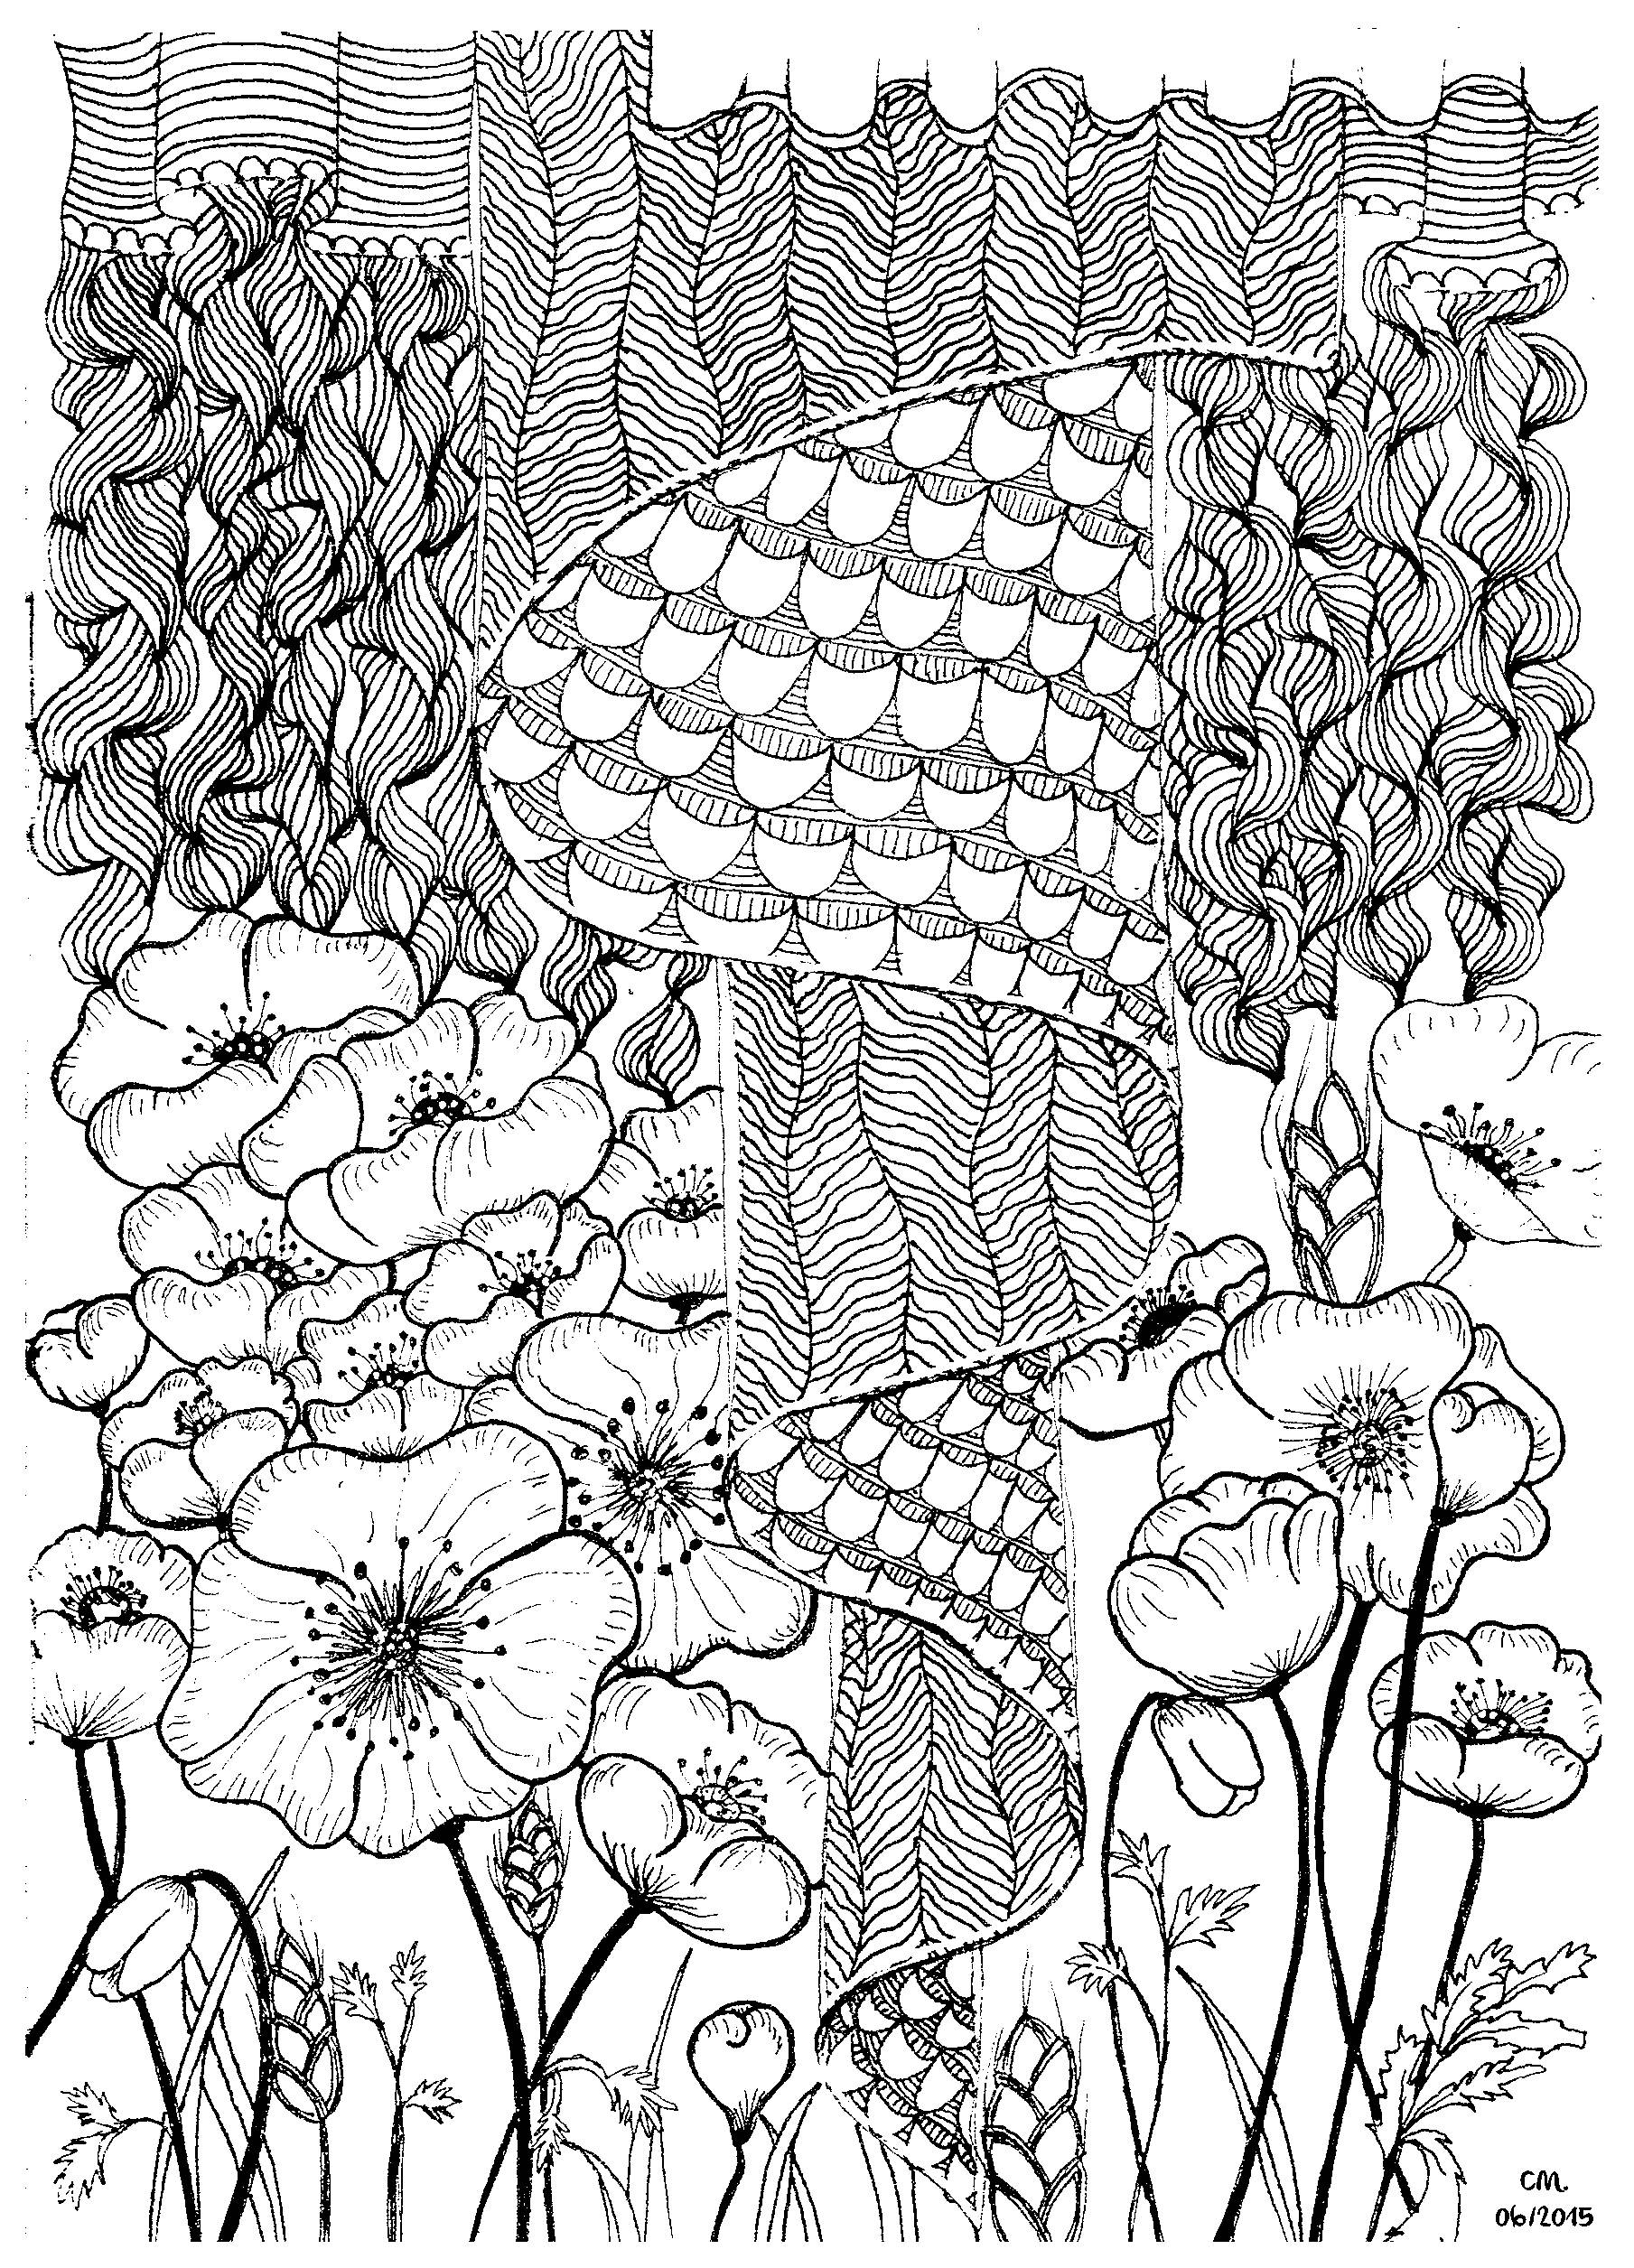 'Poppies', exclusive coloring page See the original work